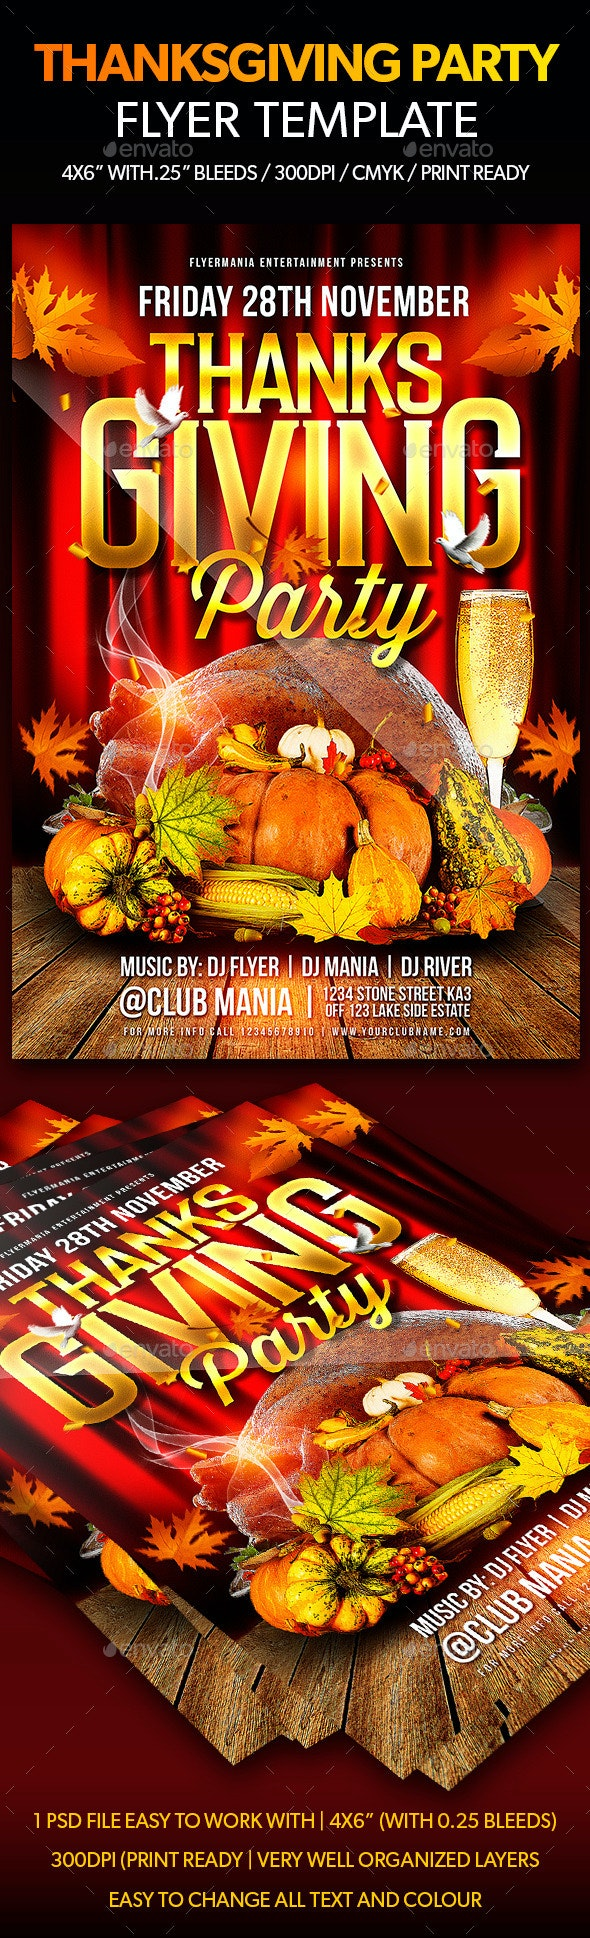 Thanksgiving Party Flyer Template - Flyers Print Templates